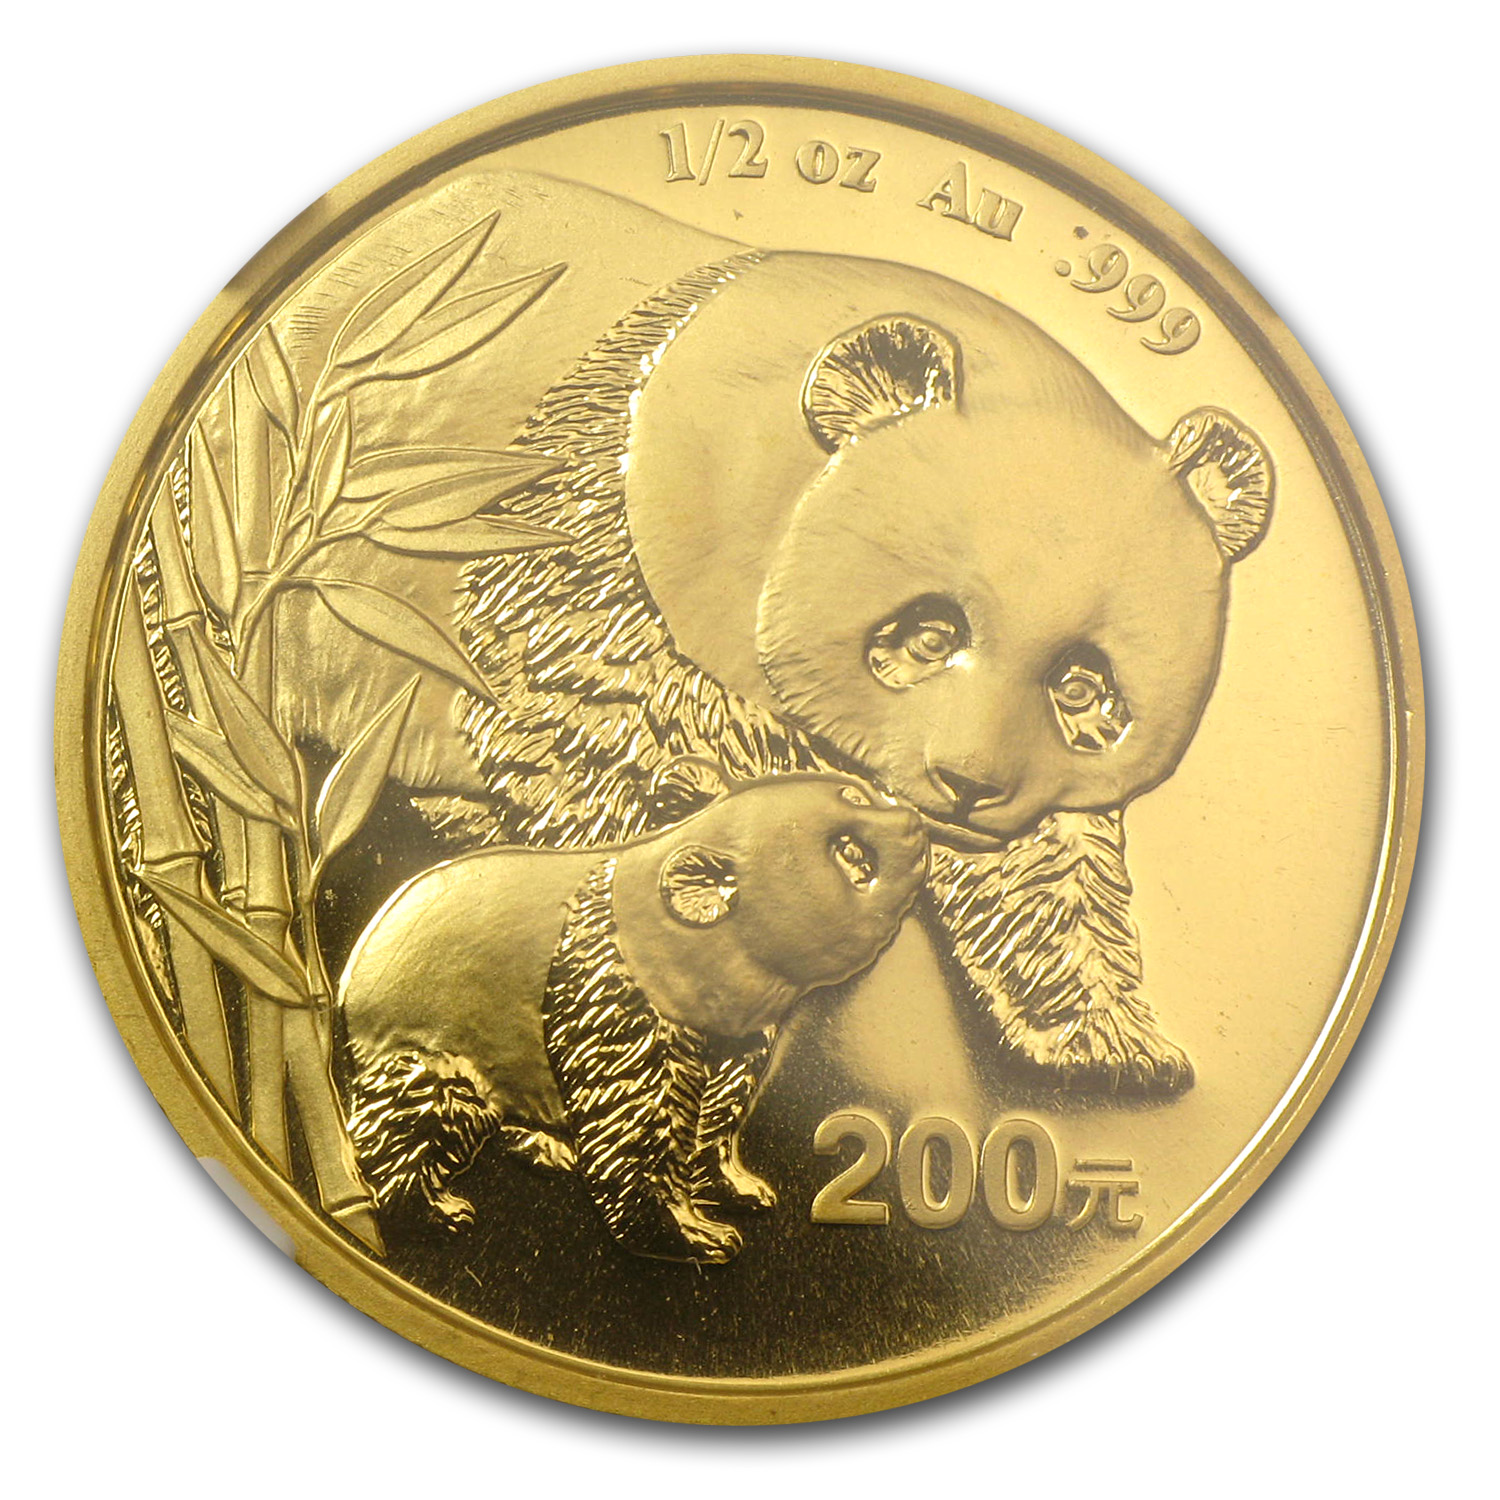 2004 China 1/2 oz Gold Panda MS-69 NGC